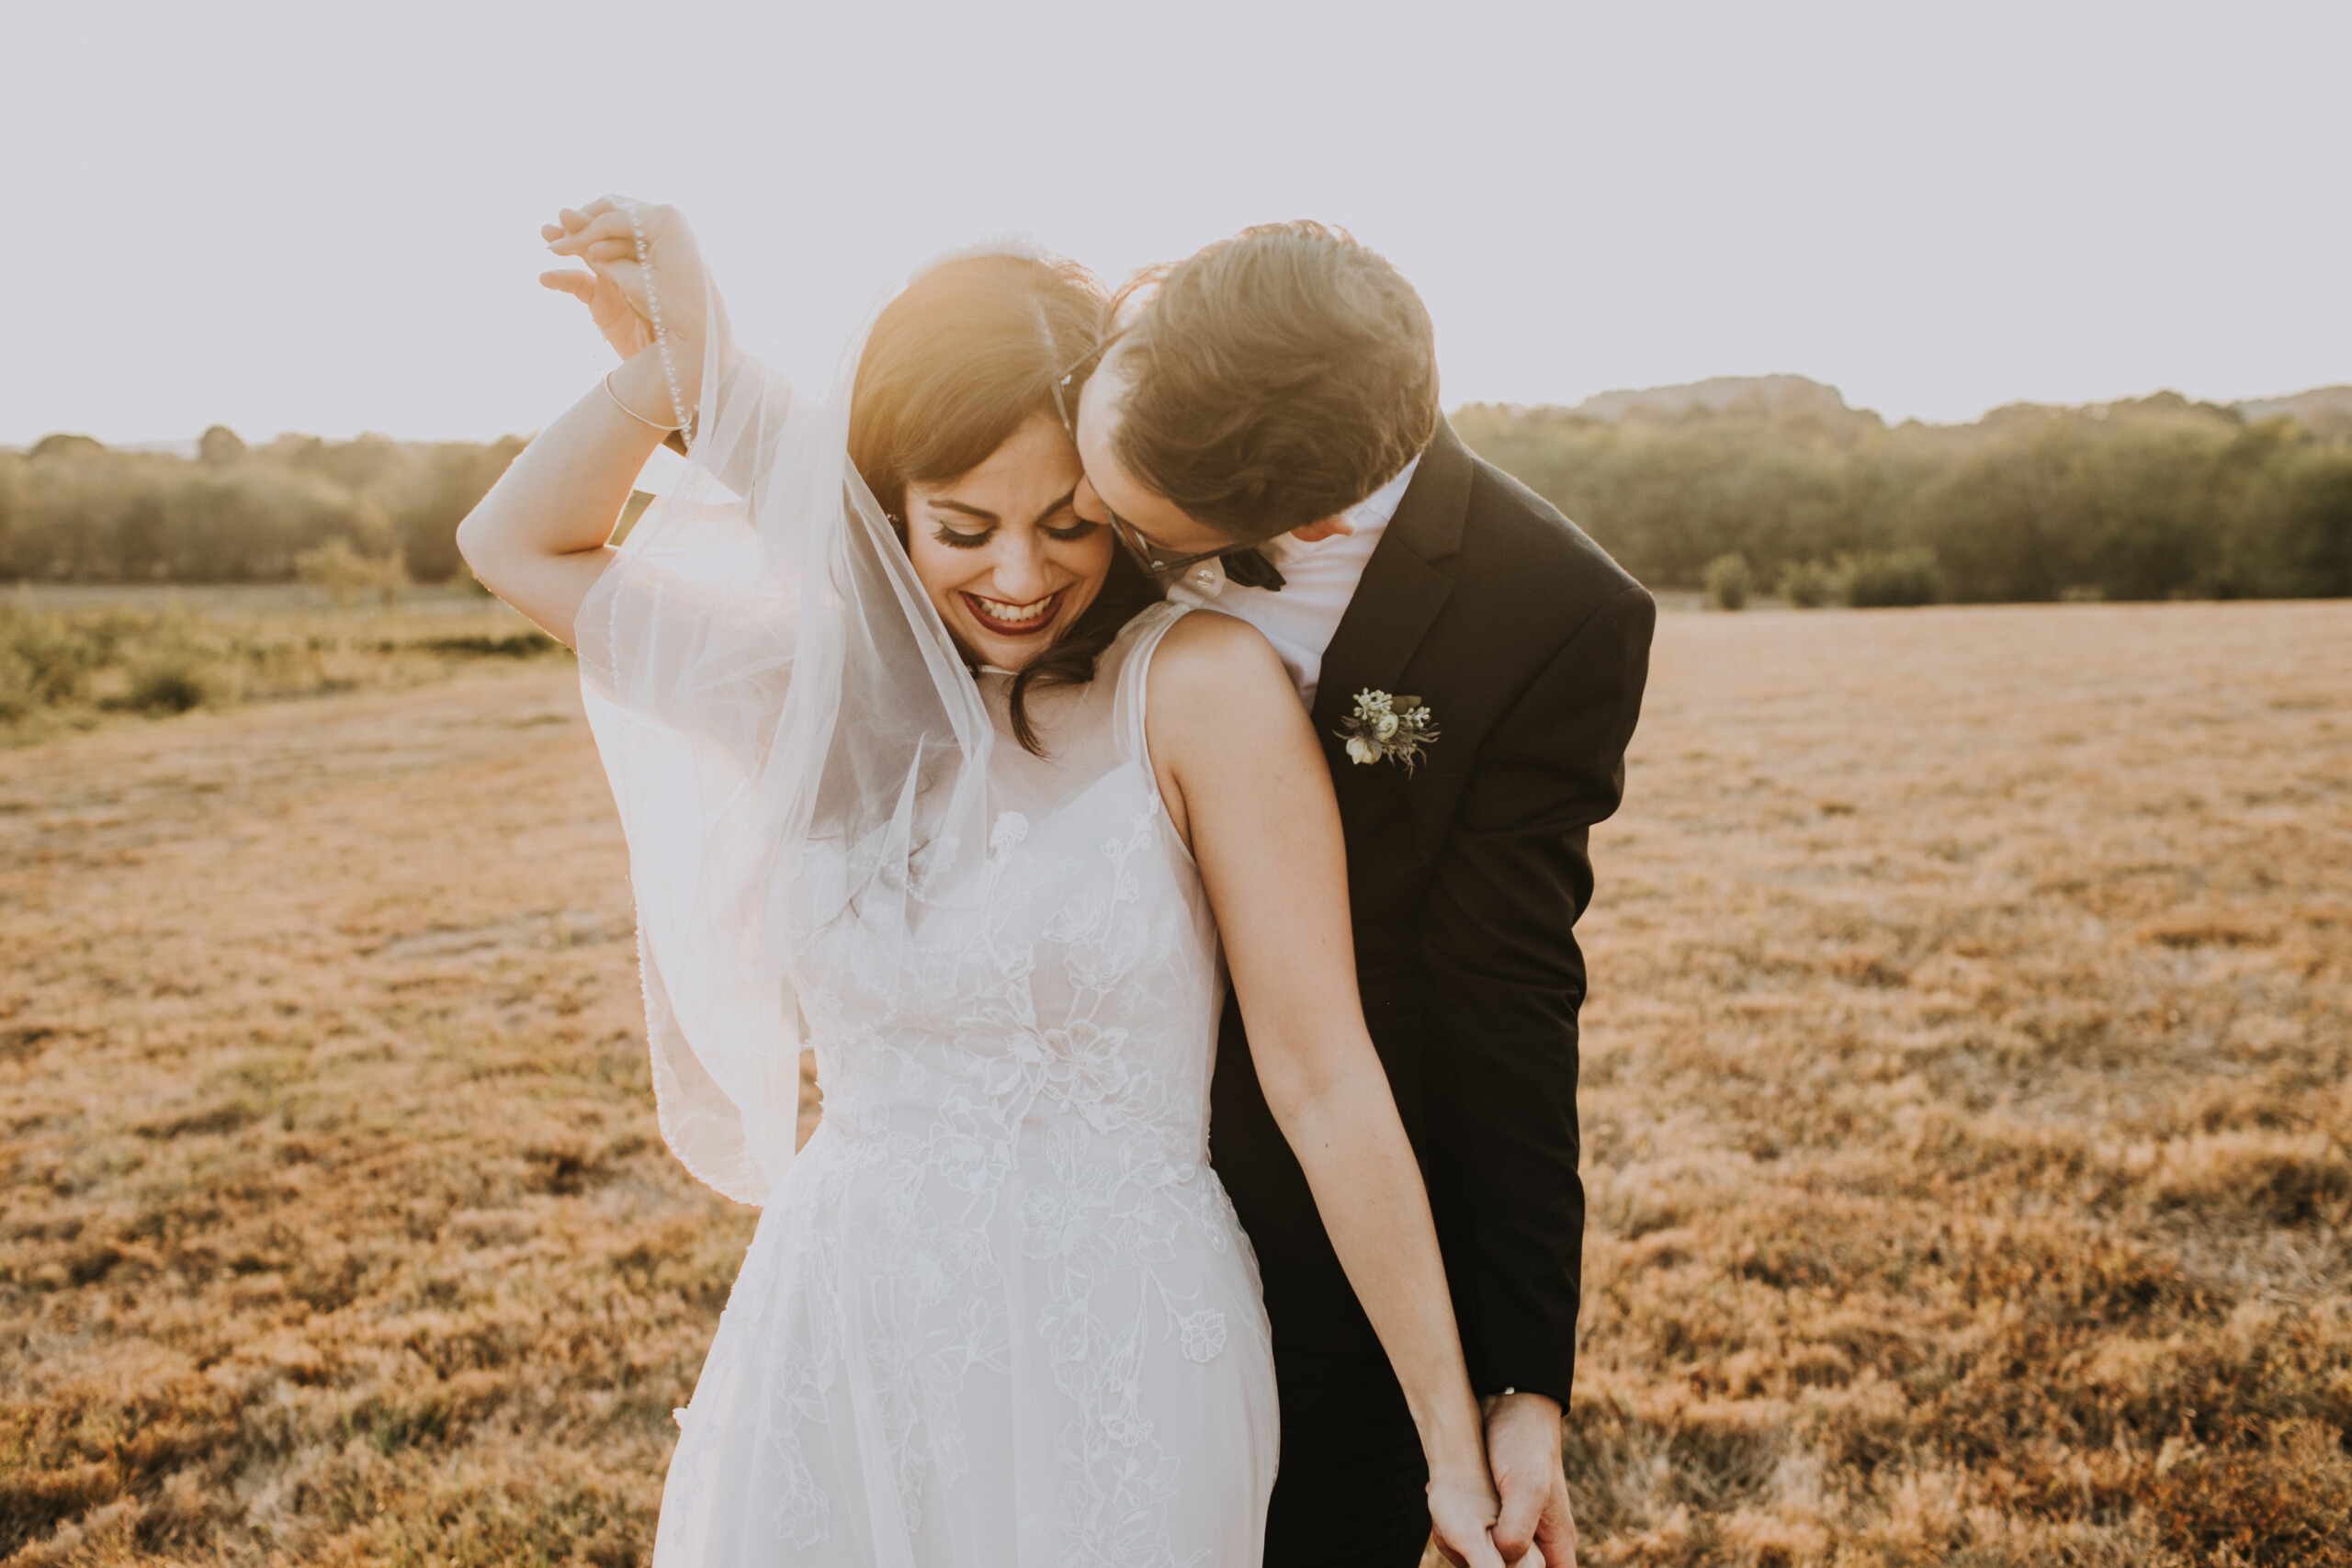 Sunset wedding photo: Nashville Wedding with Beautiful Views by Teale Photography featured on Nashville Bride Guide